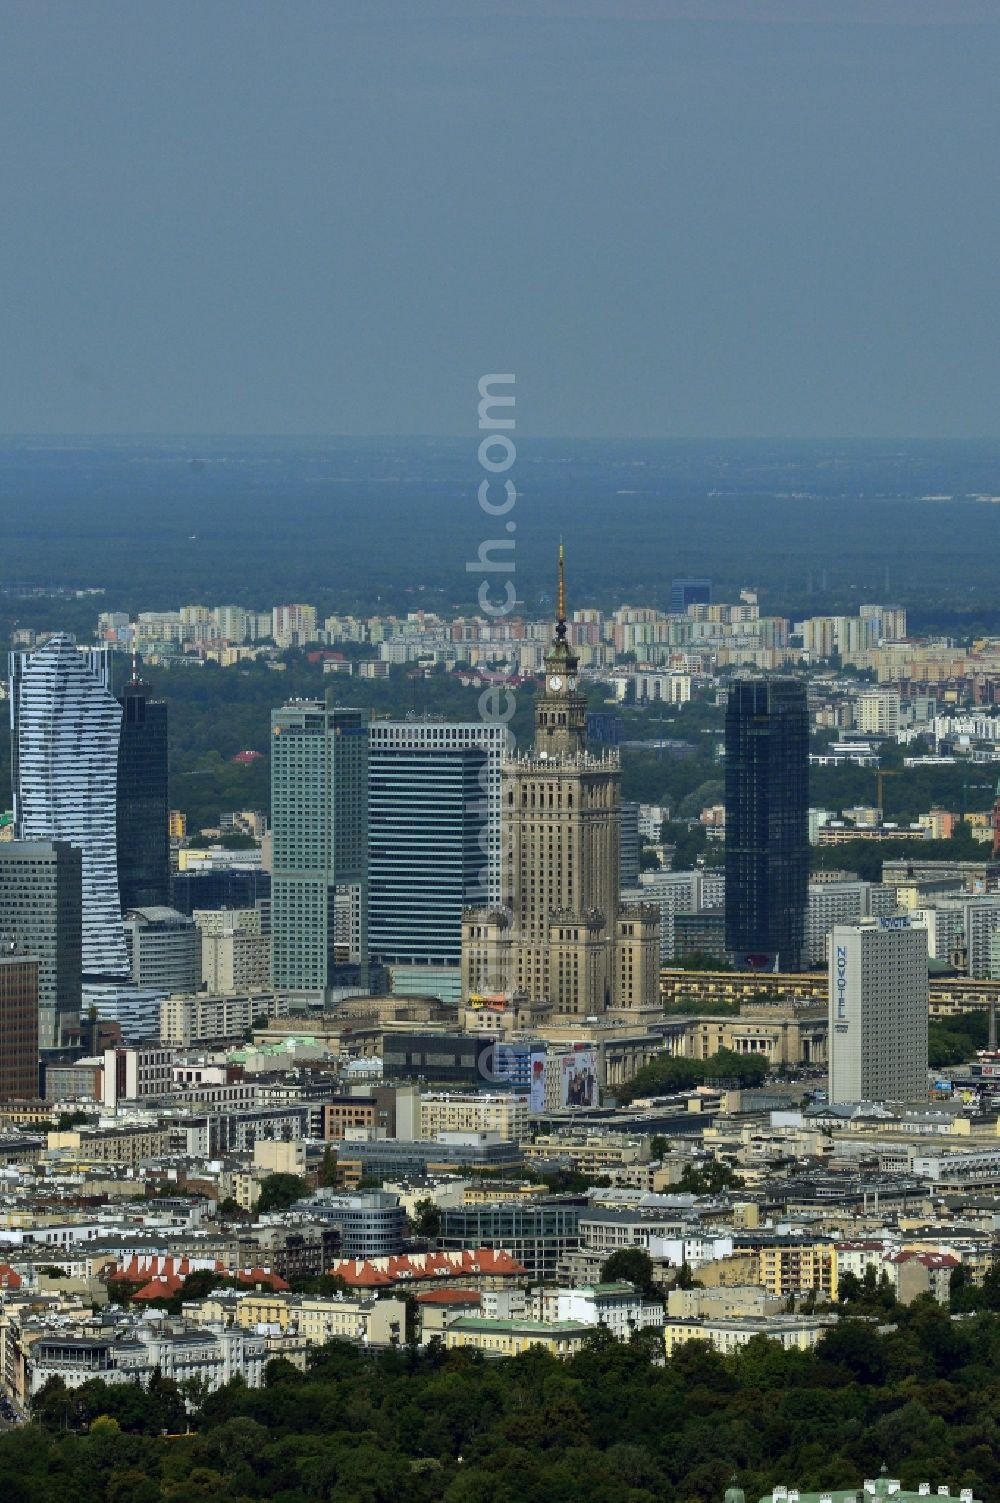 Aerial photograph Warschau - Skyscraper skyline in the city center of Warsaw in Poland. The series of buildings ranging from the landmark high-rise buildings of the Palace of Culture and Science, the Zlota 44, Blue Tower Plaza; Hotel Inter-Continental; Warsaw Financial Center; Rondo 1-B; Oxford Tower and other